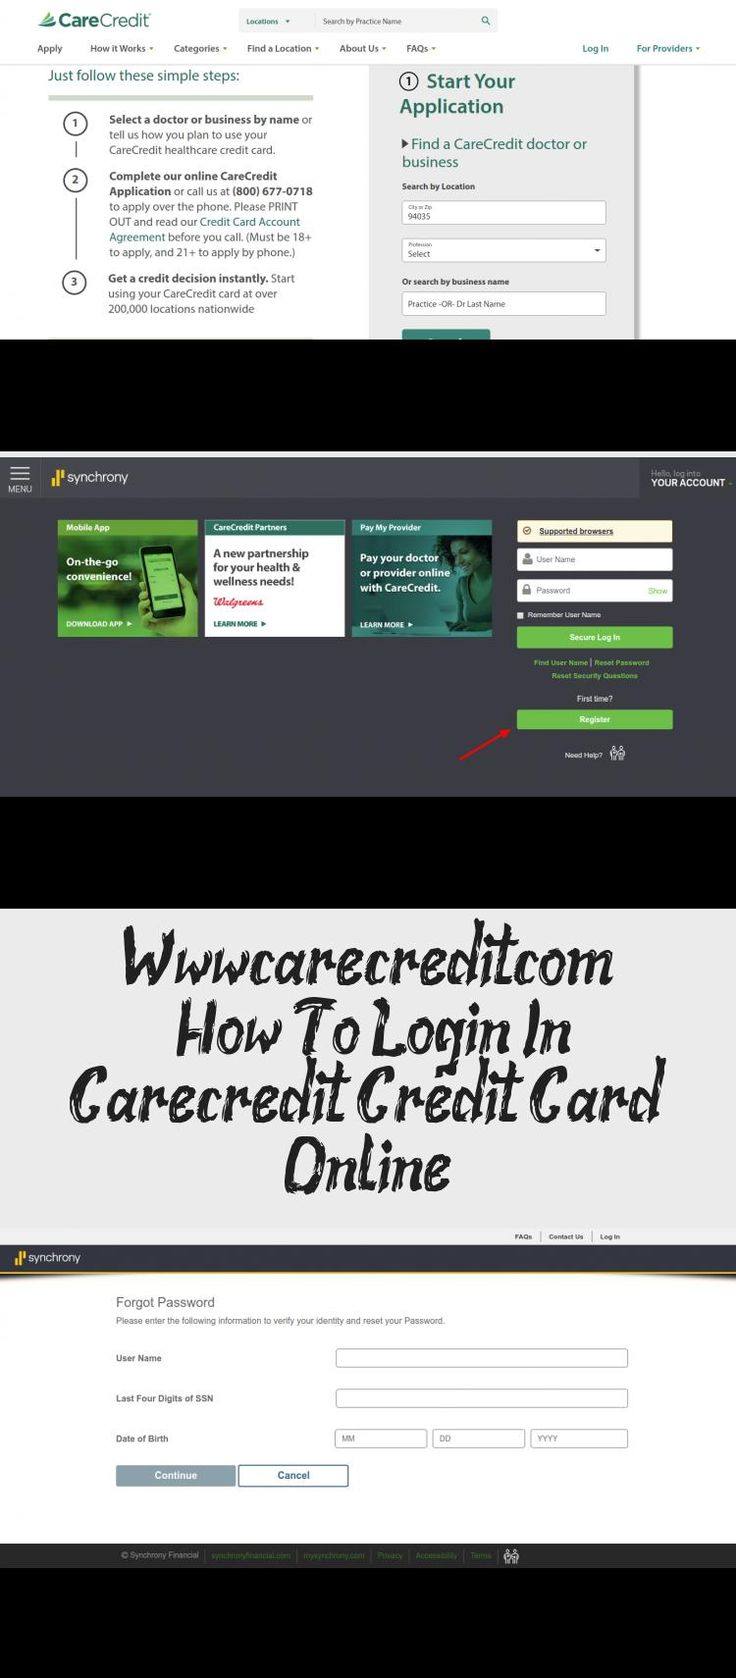 How To Login In Carecredit Credit